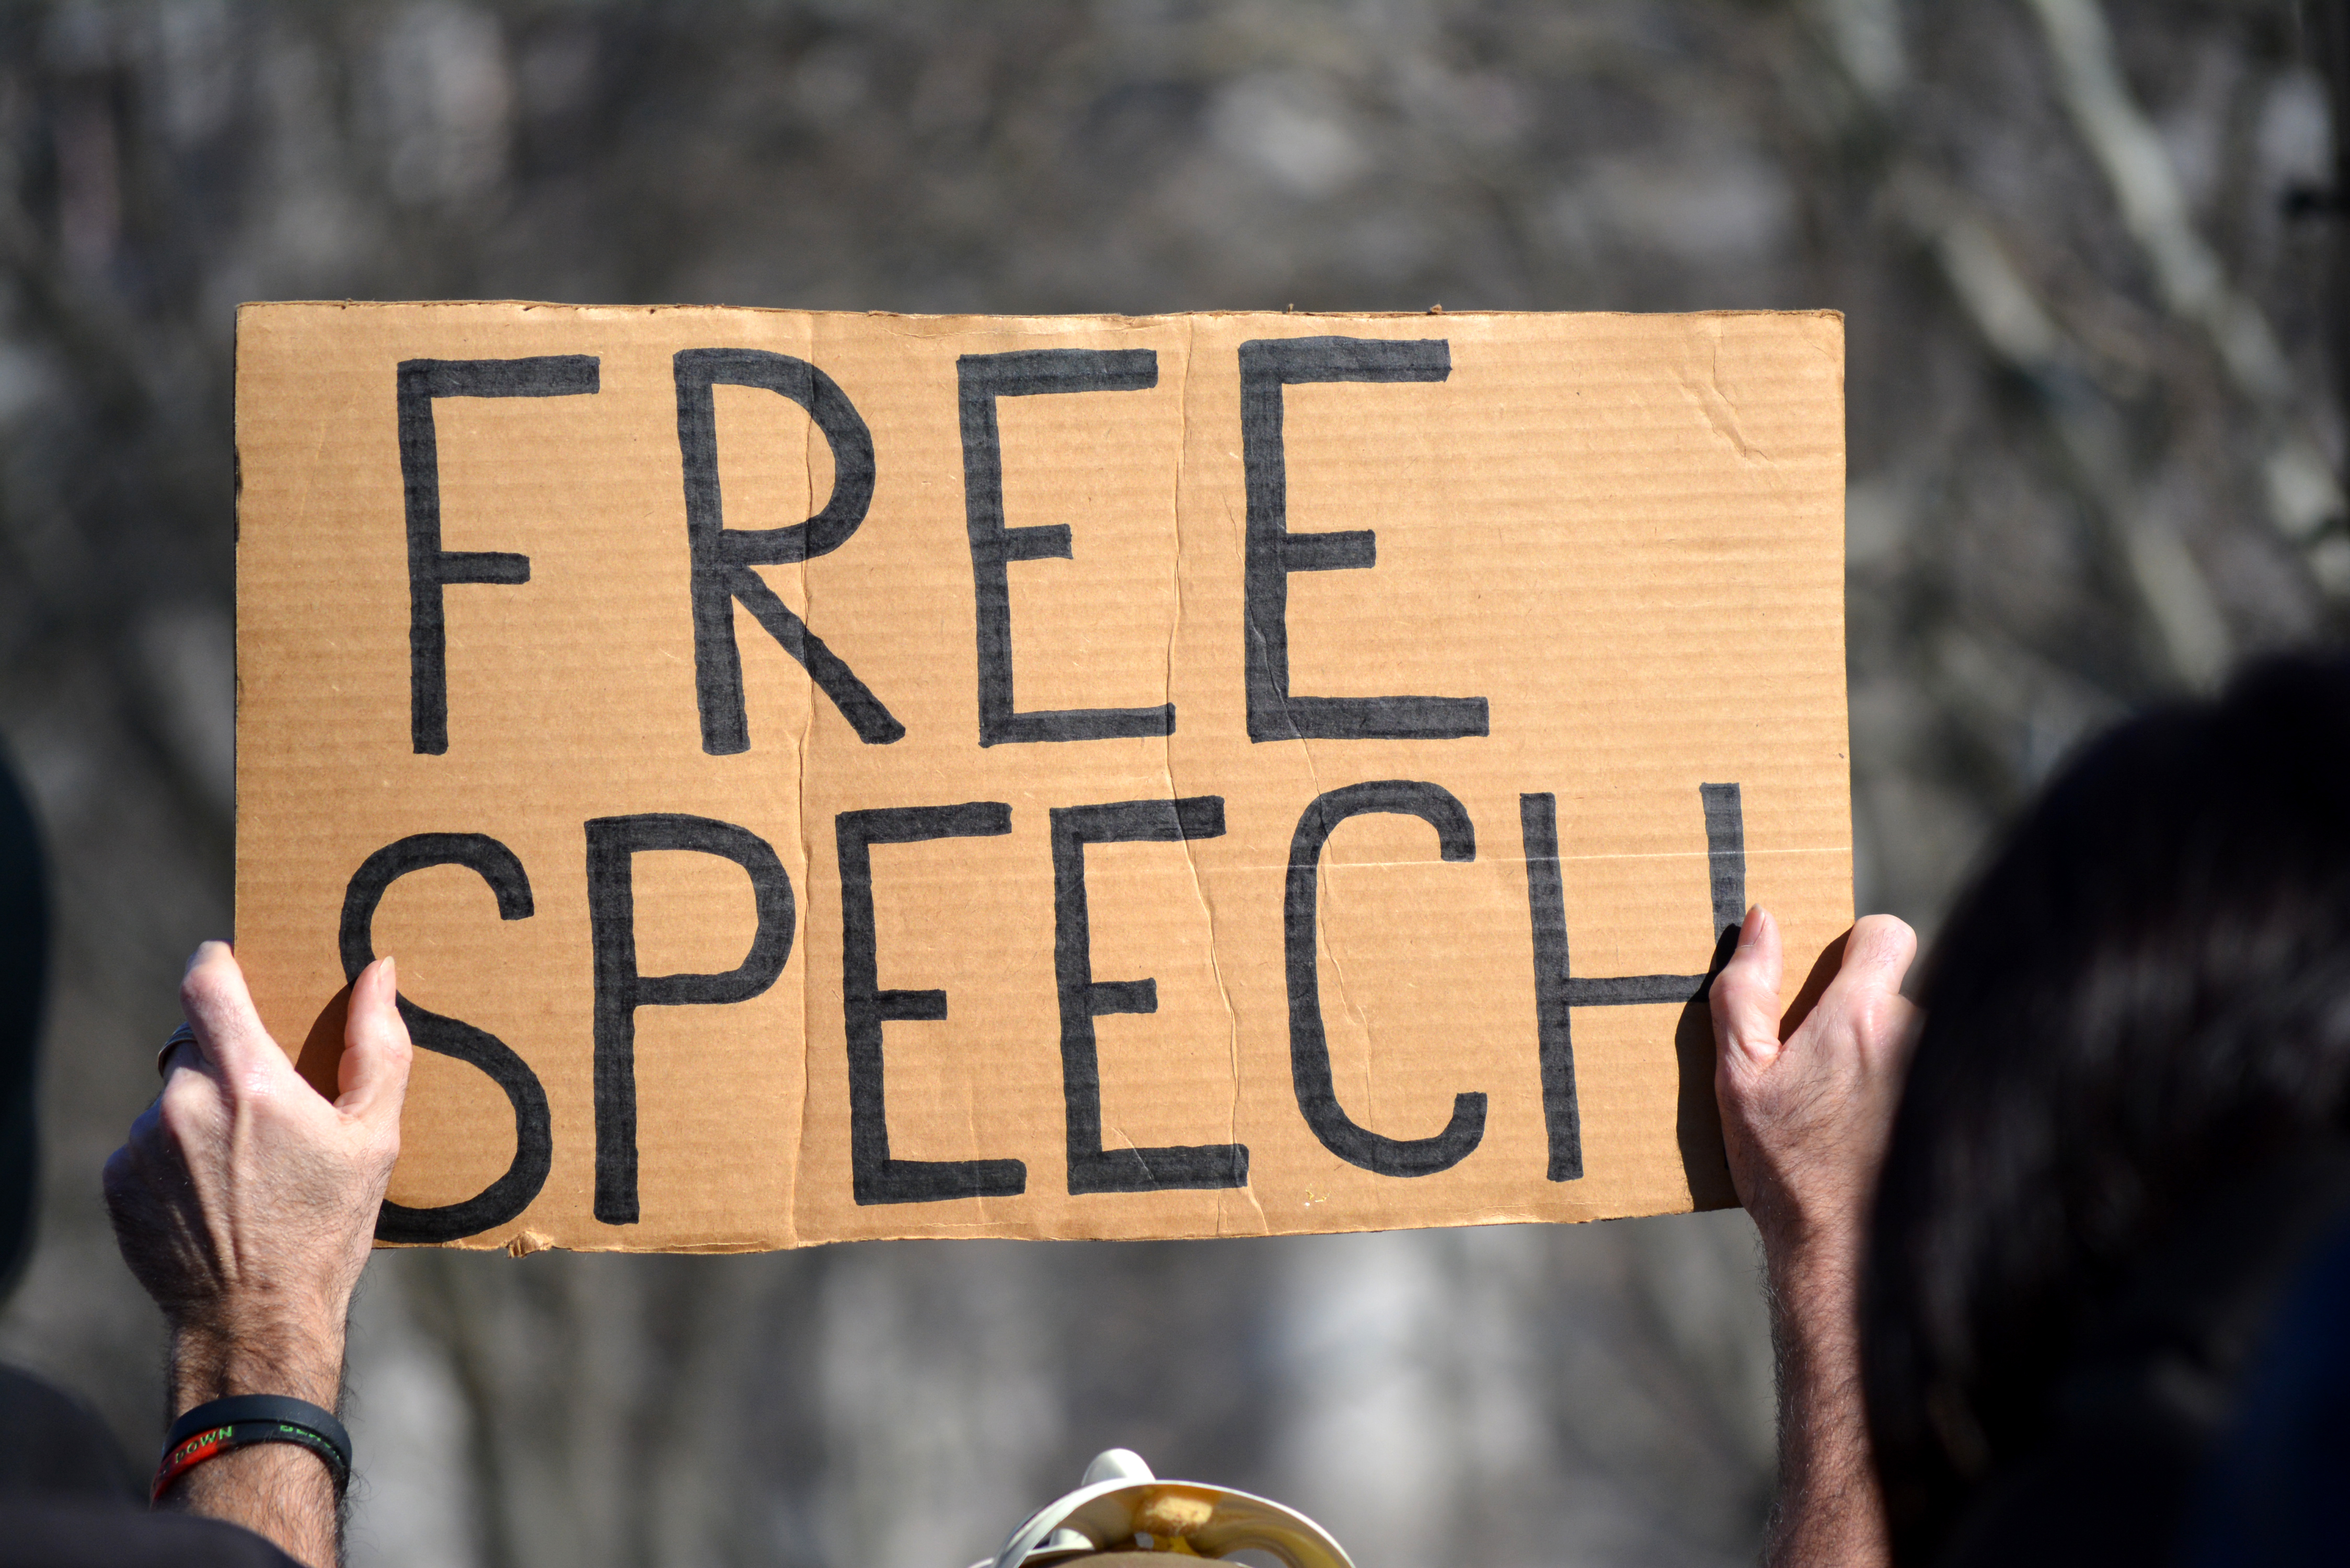 A philosopher makes the case against free speech